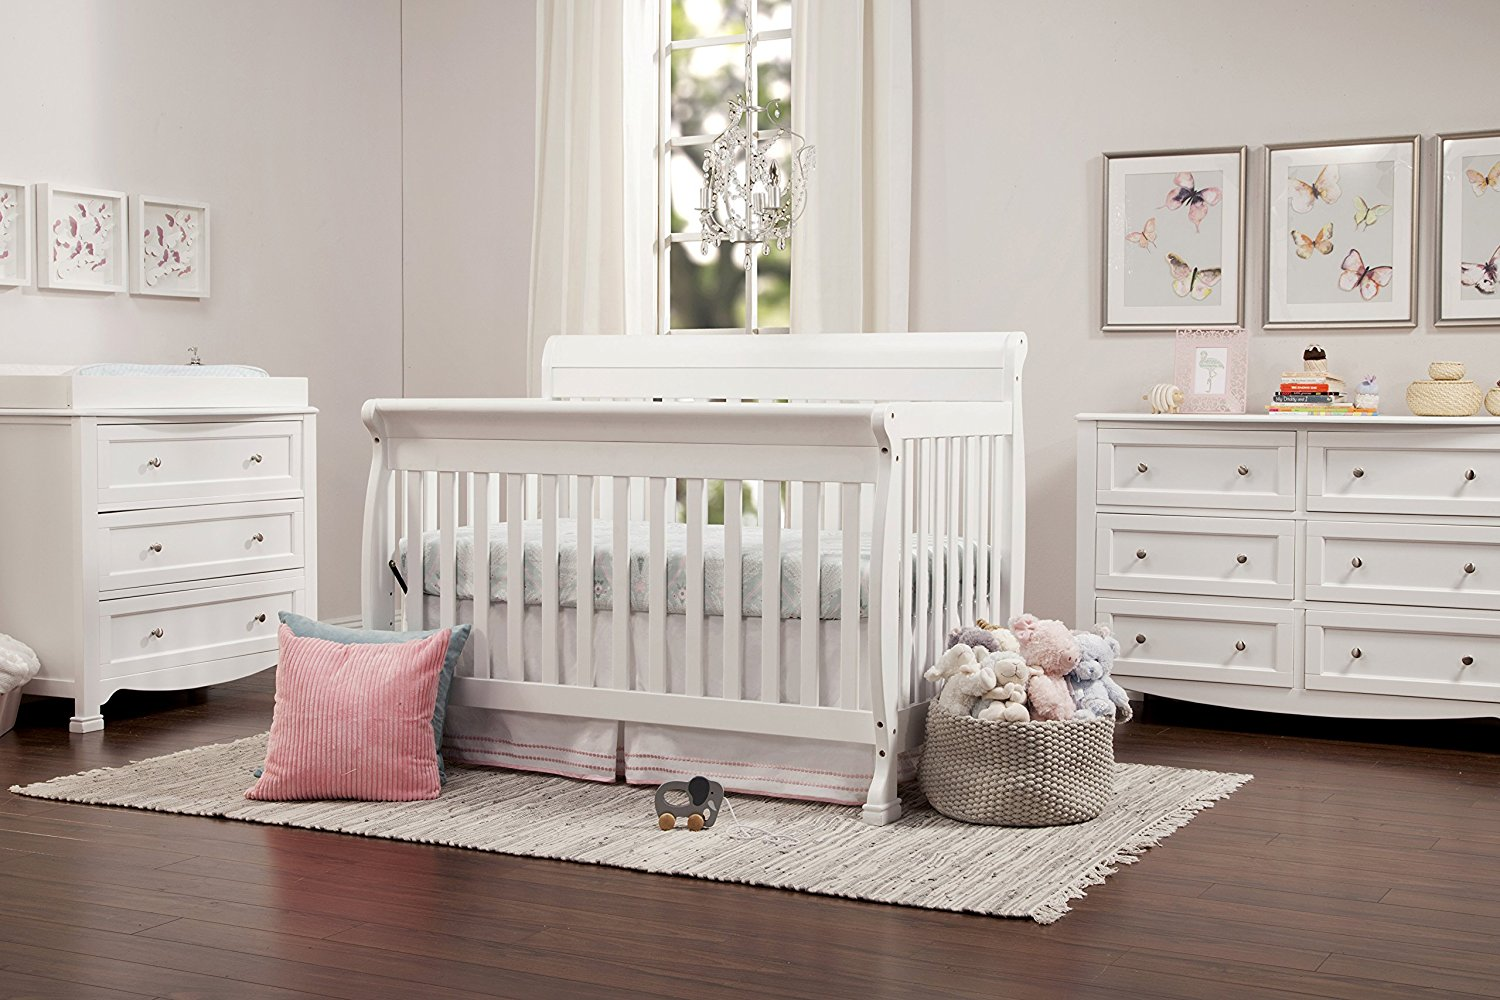 Bellini Cribs | Baby R Us Cribs | Cribs At Target